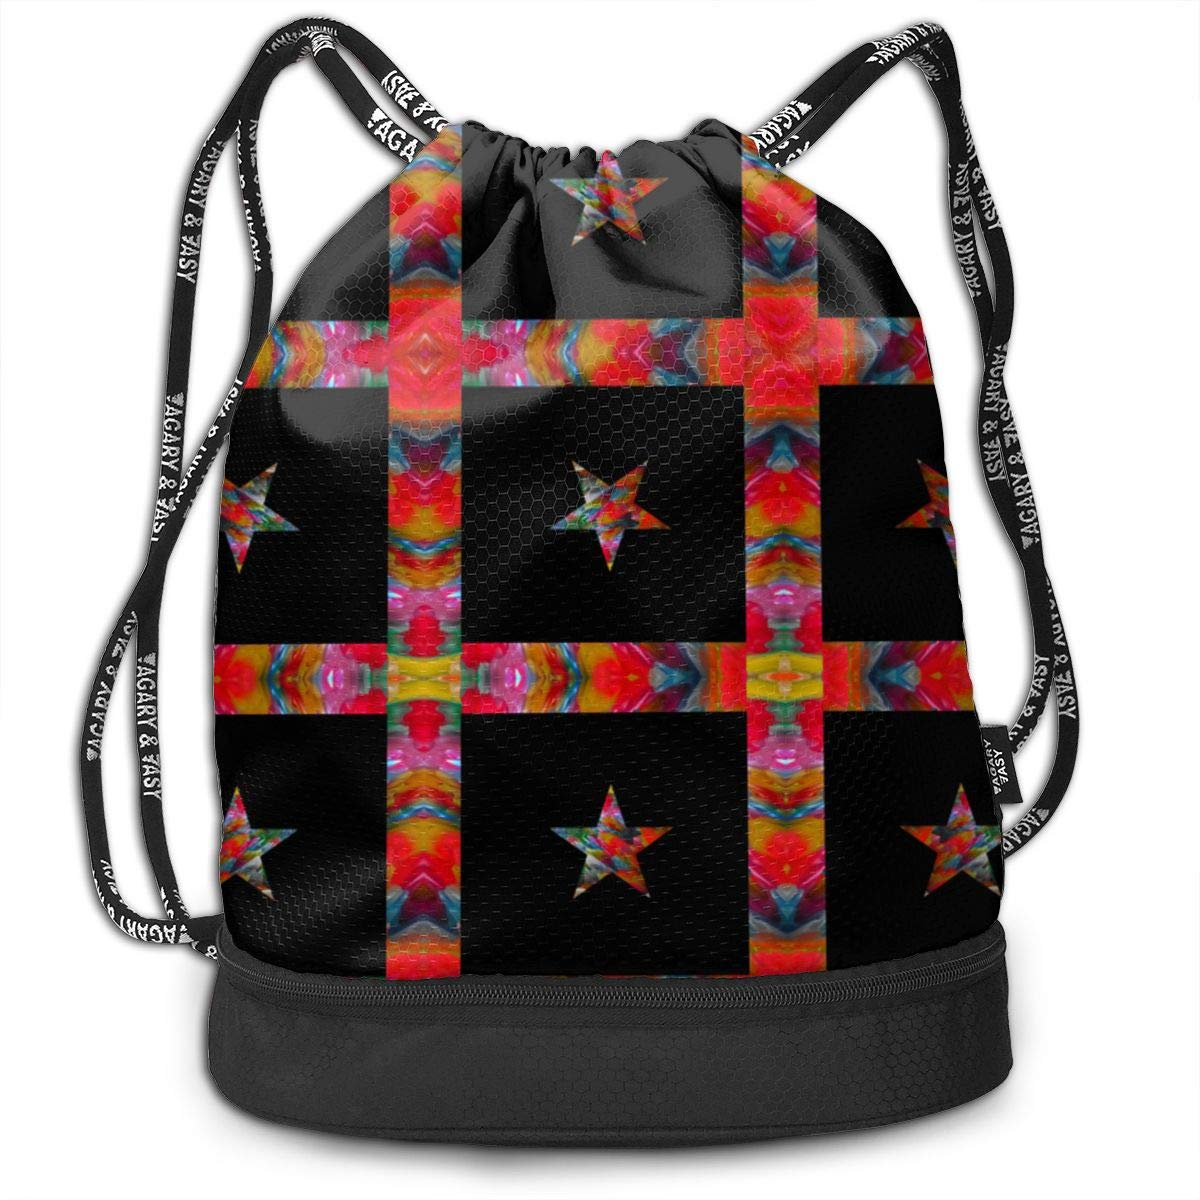 Star On Black Drawstring Backpack Sports Athletic Gym Cinch Sack String Storage Bags for Hiking Travel Beach